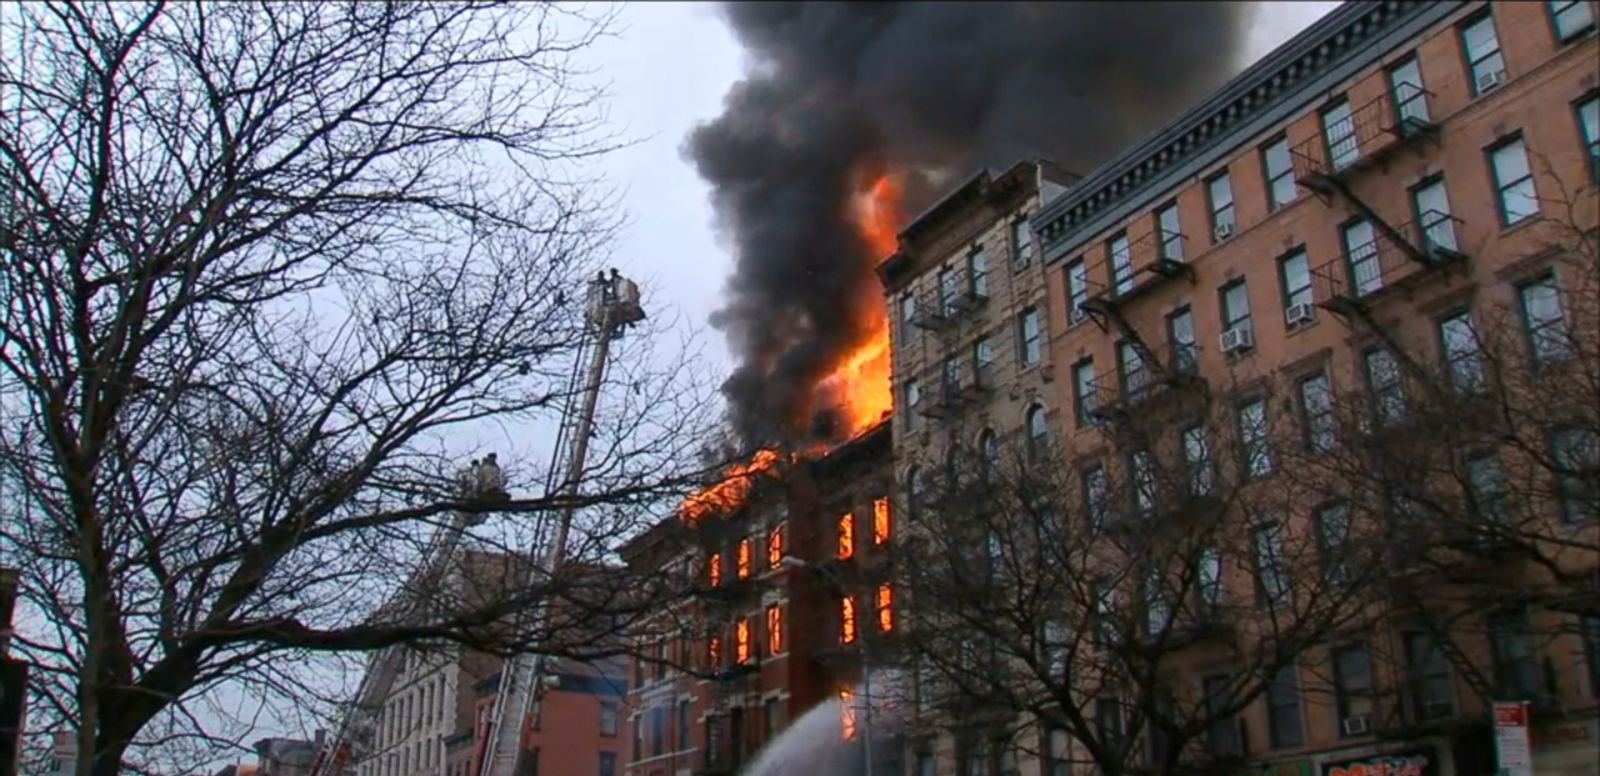 VIDEO: A gas explosion is suspected to have caused the 7-alarm blaze at a building on Manhattan's Lower East Side, injuring at least 12 people.